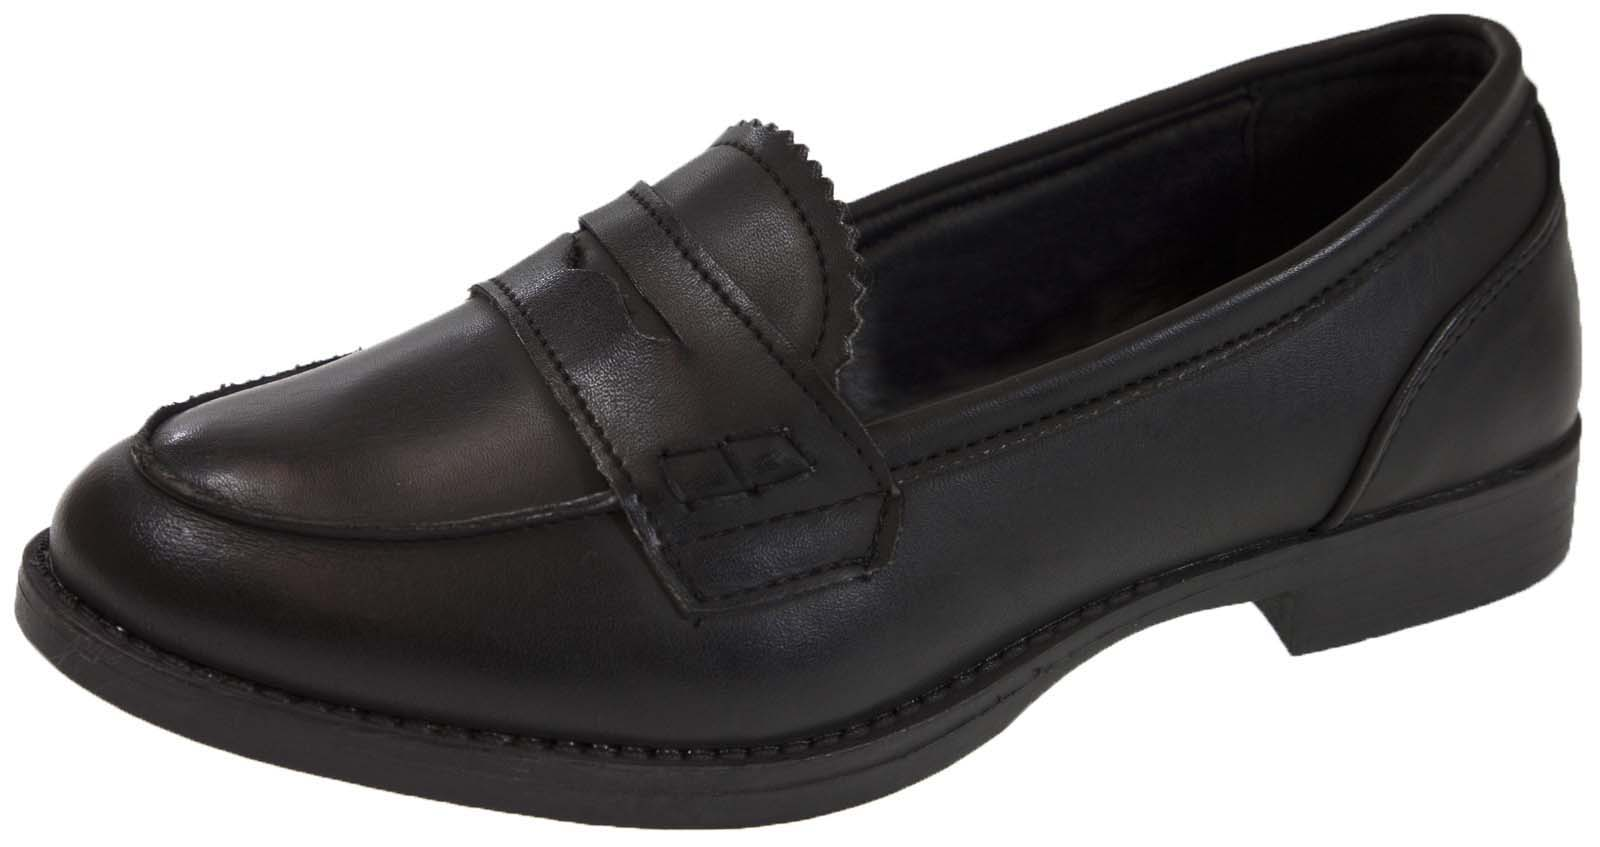 Girls Slip On Loafers Faux Leather School Shoes Womens Comfort Work ... f6ec5ce5e6